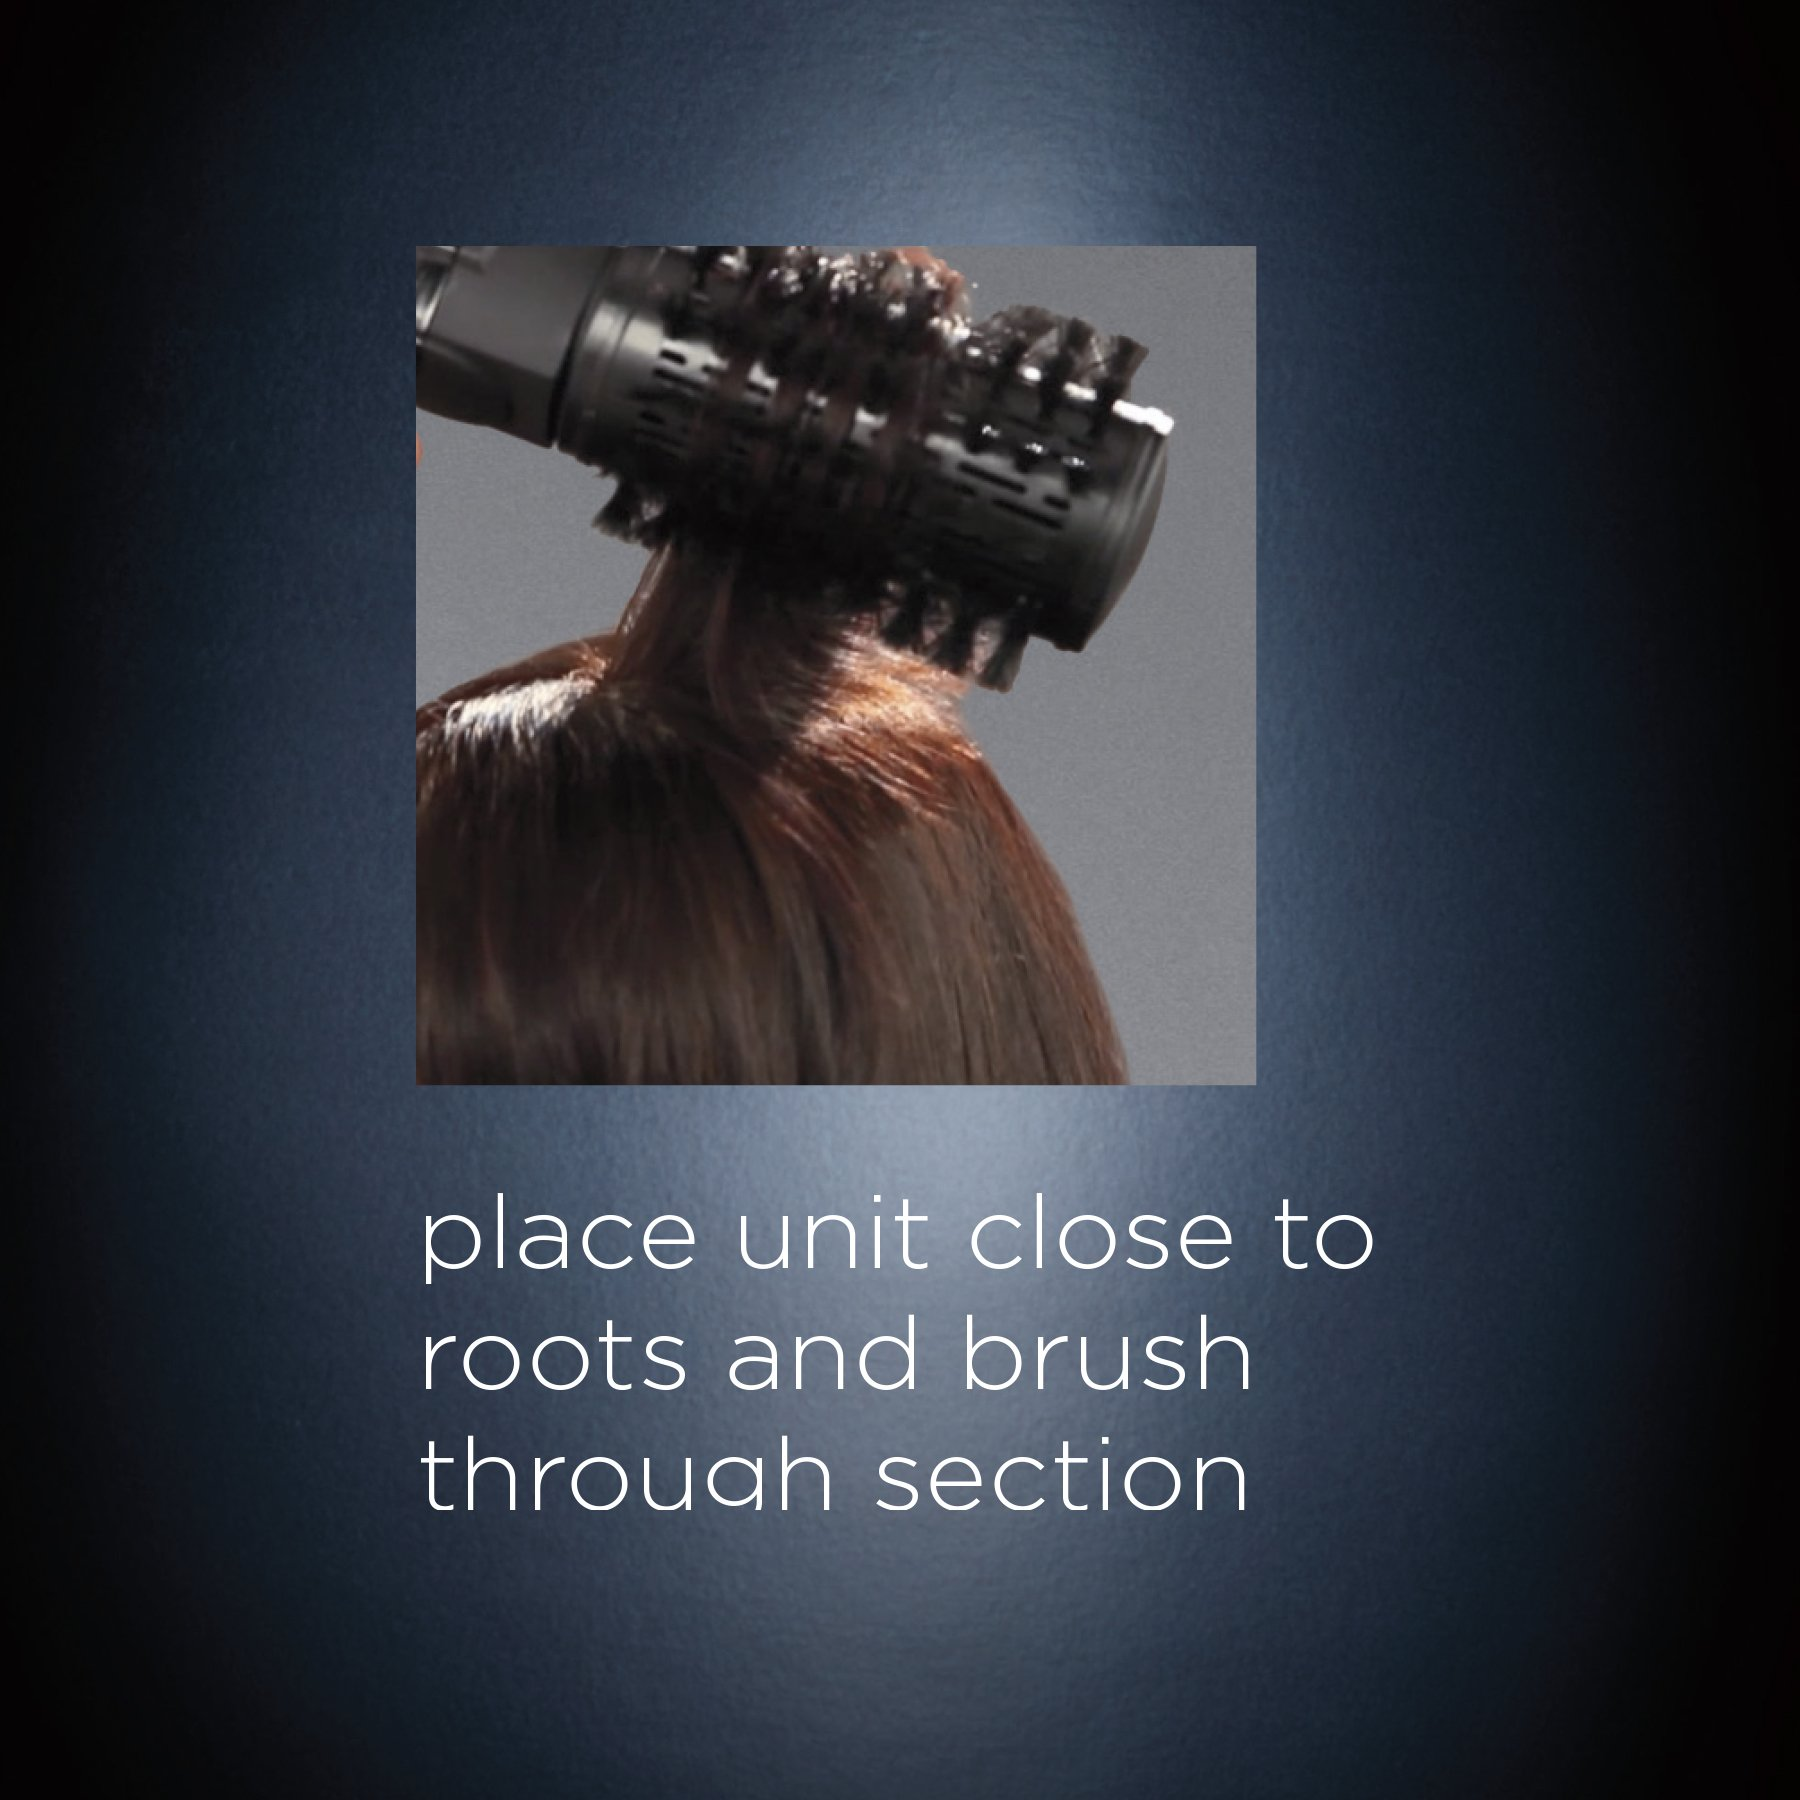 INFINITIPRO BY CONAIR Tourmaline Ceramic Hot Air Brush Styler + Paddle Brush Attachment; Get A Salon Blowout at Home by Conair (Image #7)